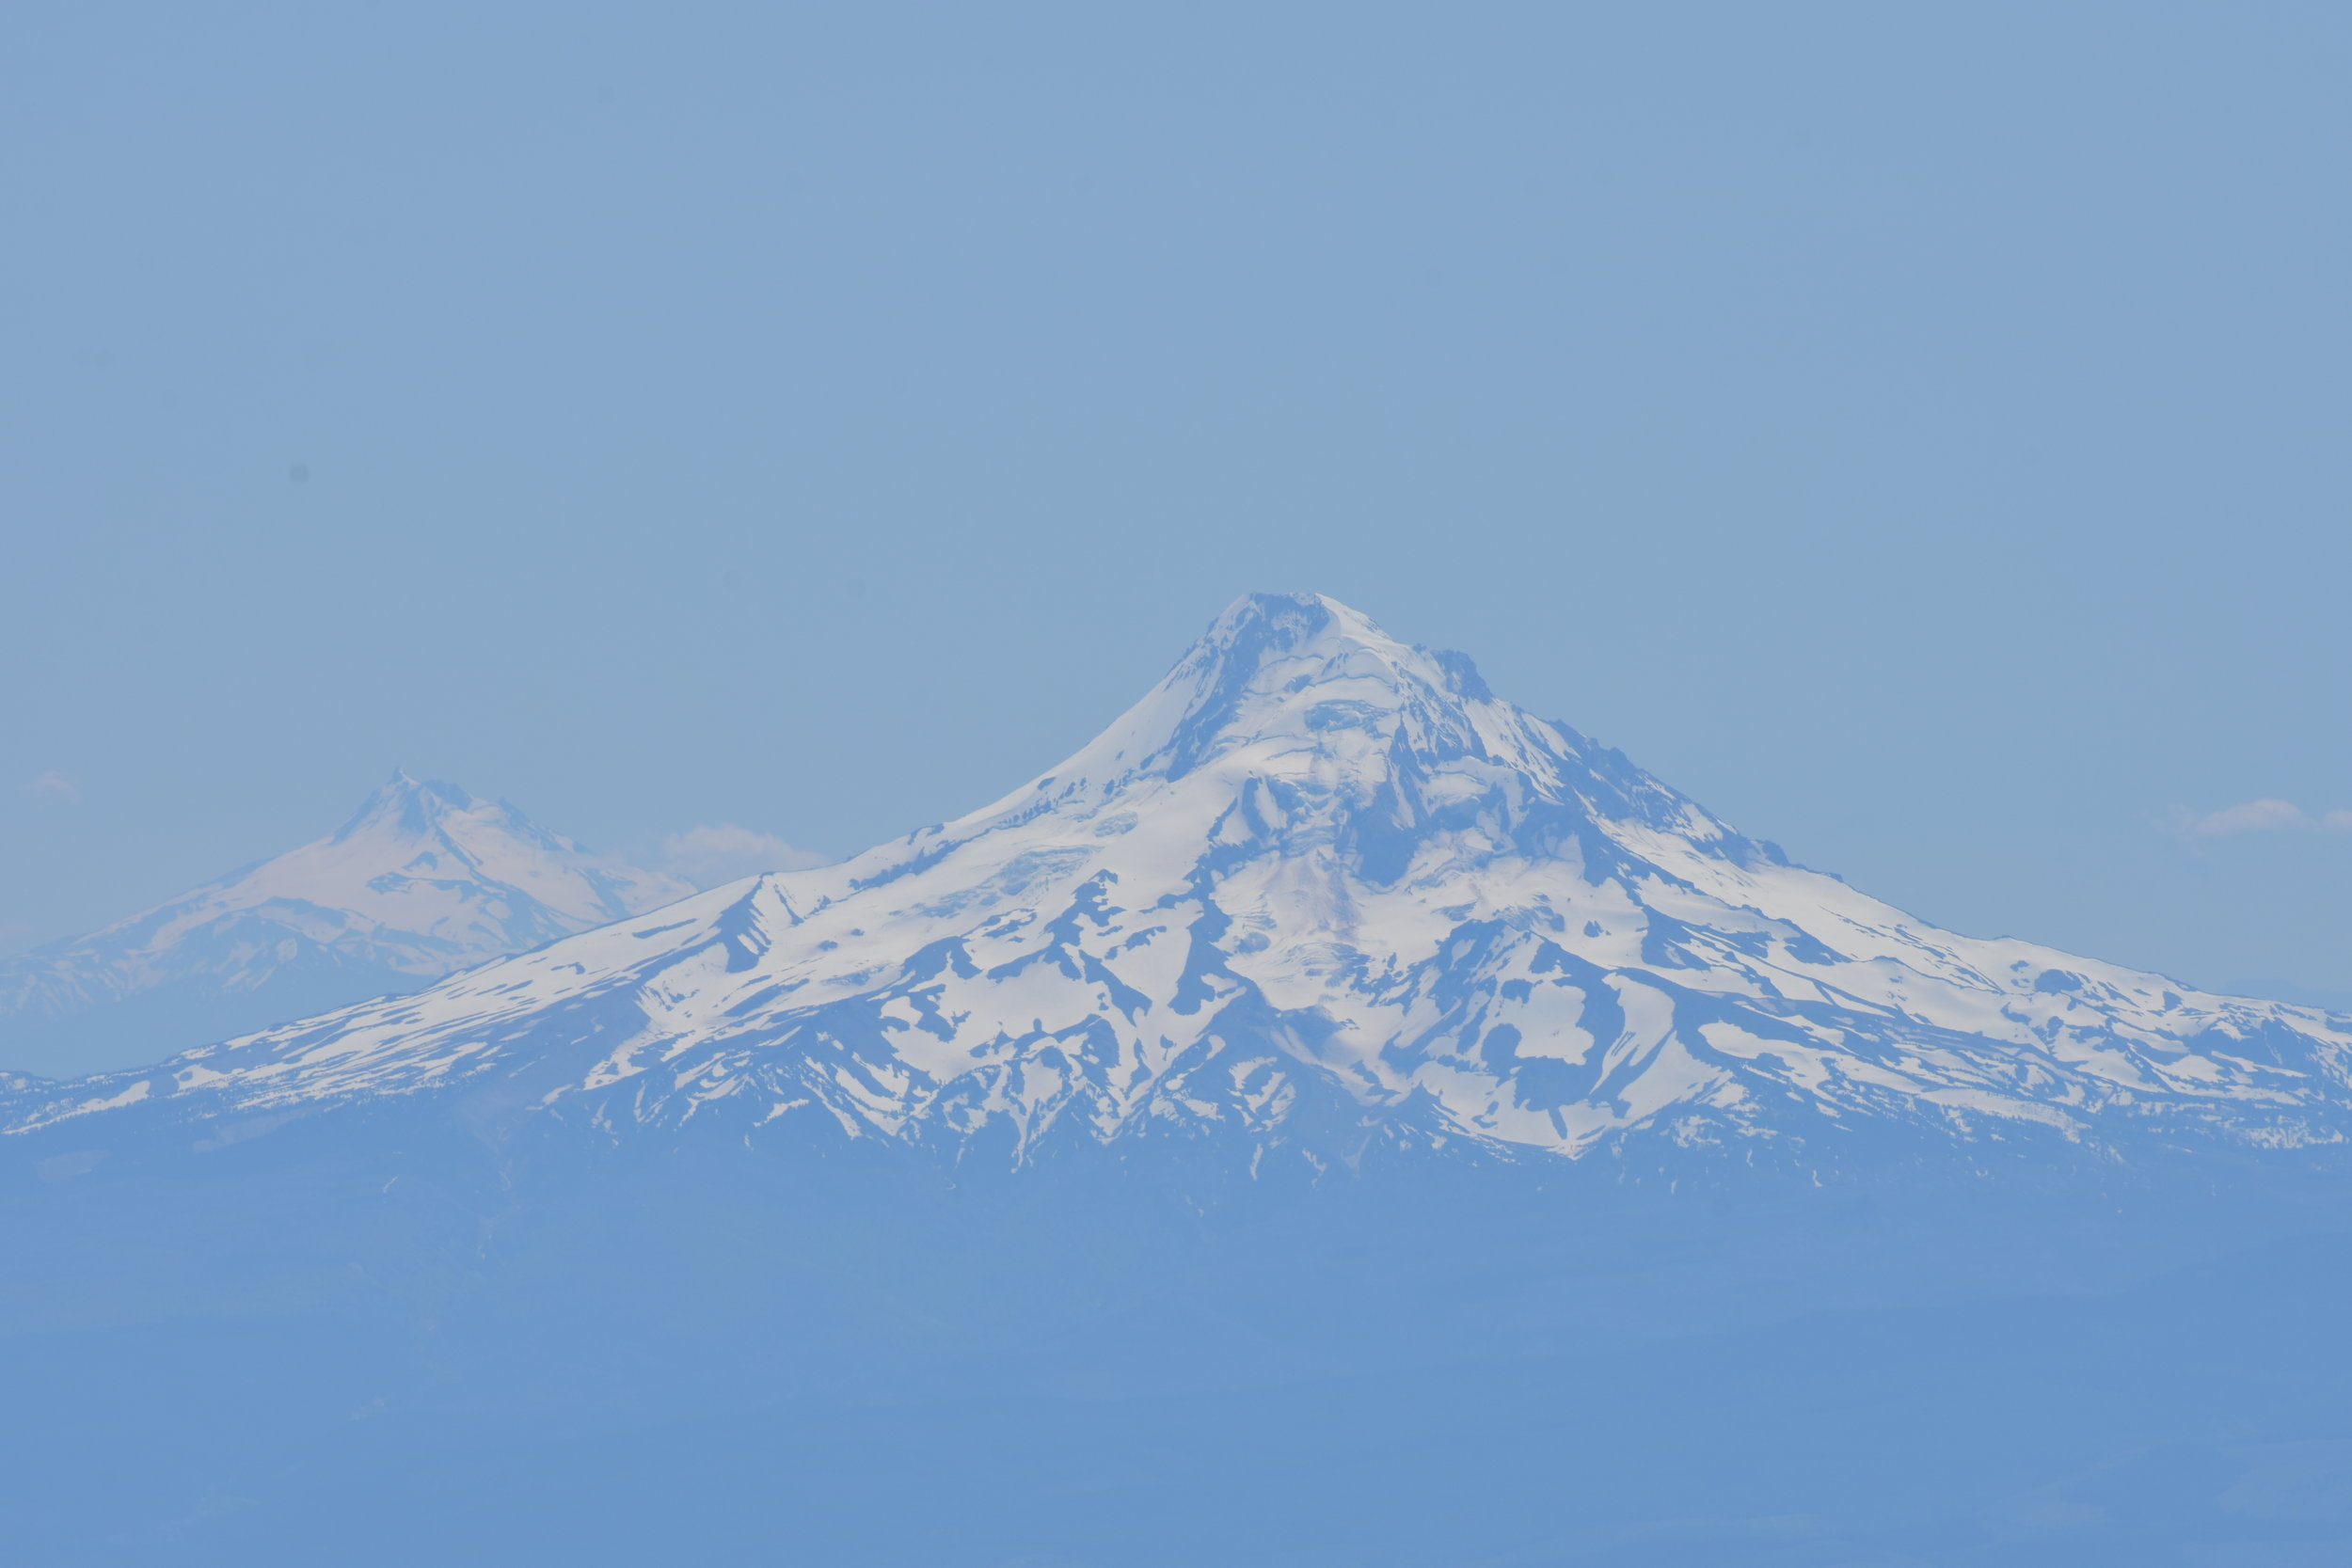 Mt. Hood in front of Three Sisters from Mt. Adams